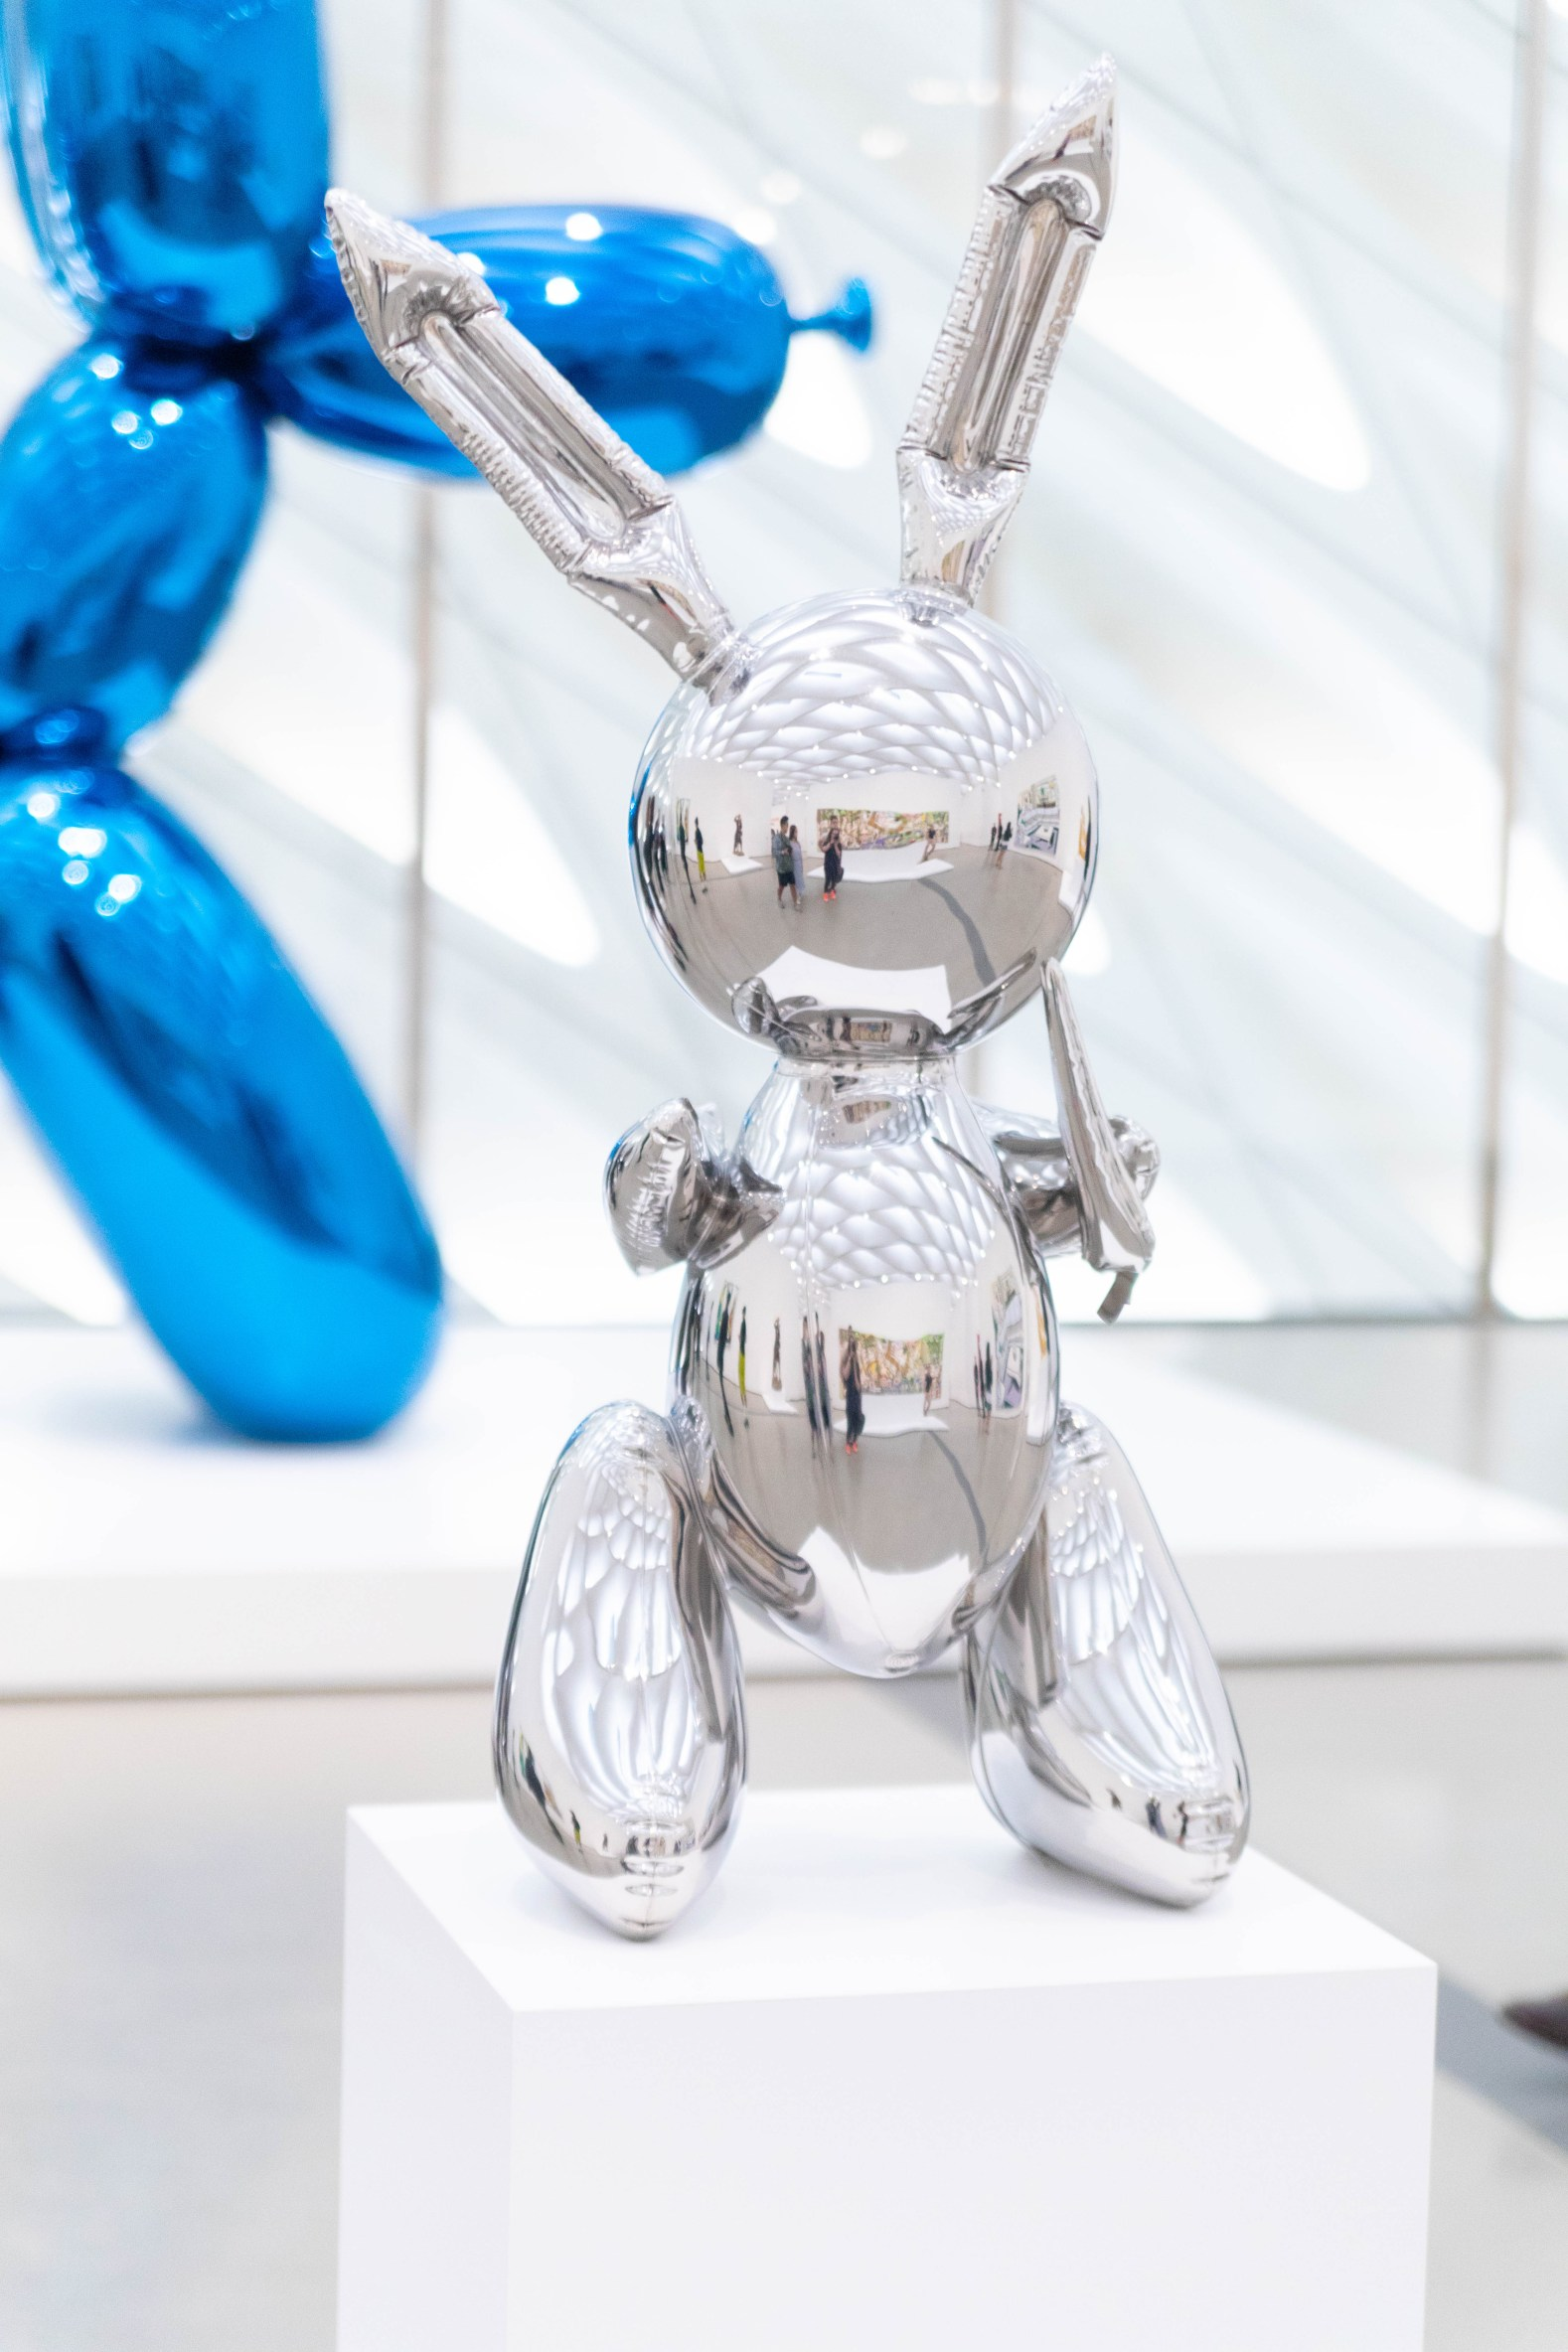 Balloon Dog (Blue) by Jeff Koons at The Broad Museum in Los Angeles